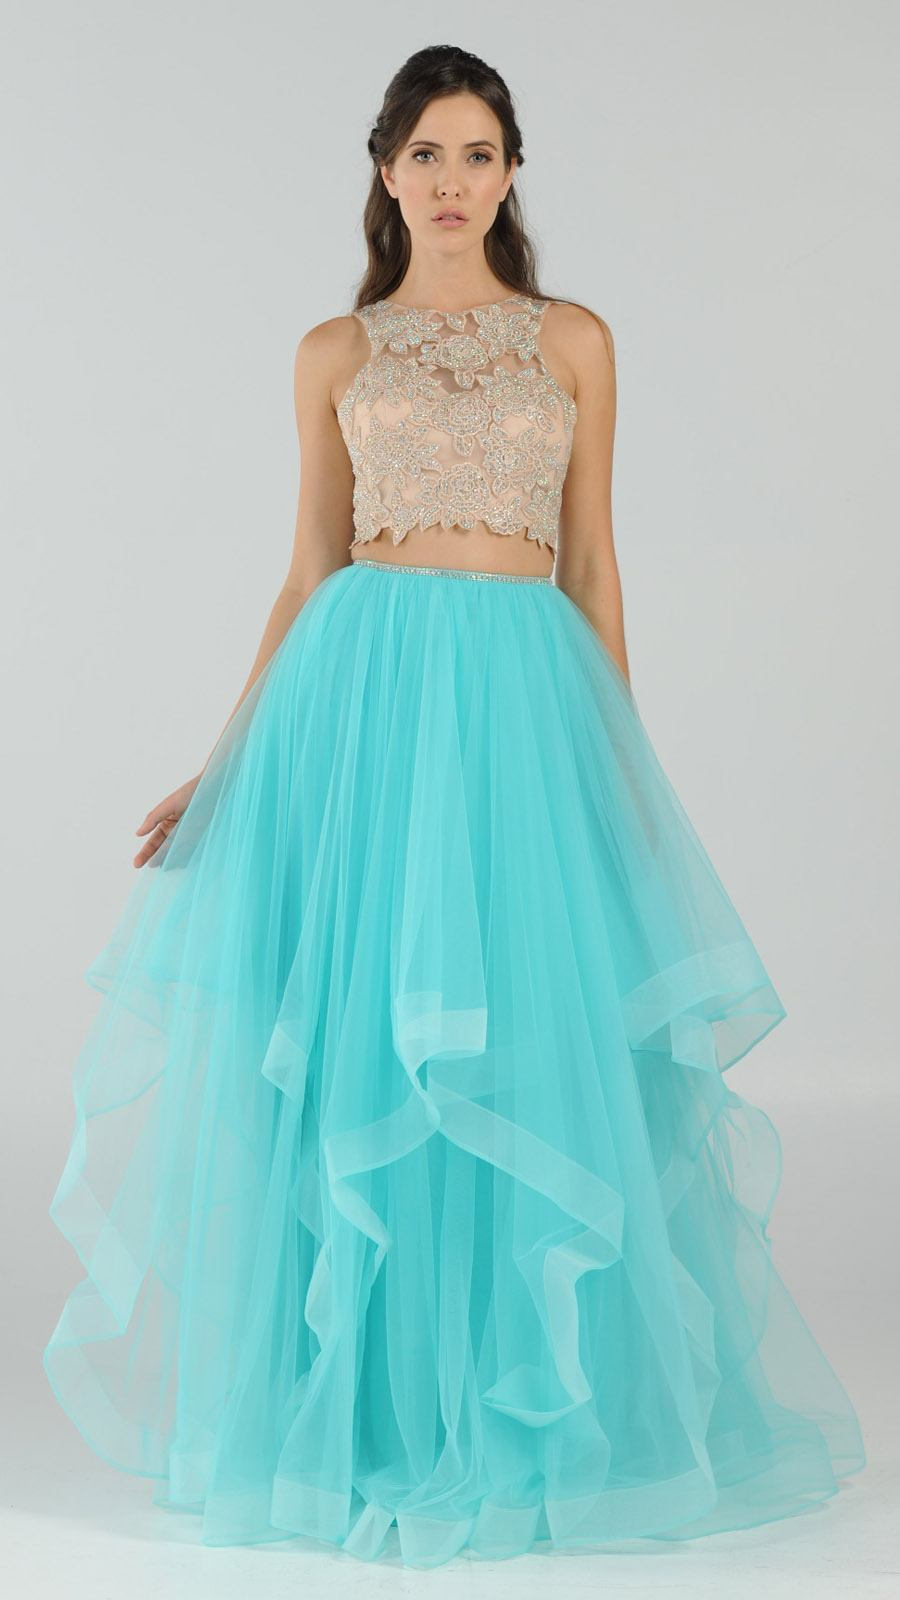 71f3e27101a ... Prom Gown Appliqued Crop Top Tiered Skirt Mint Green. Tap to expand